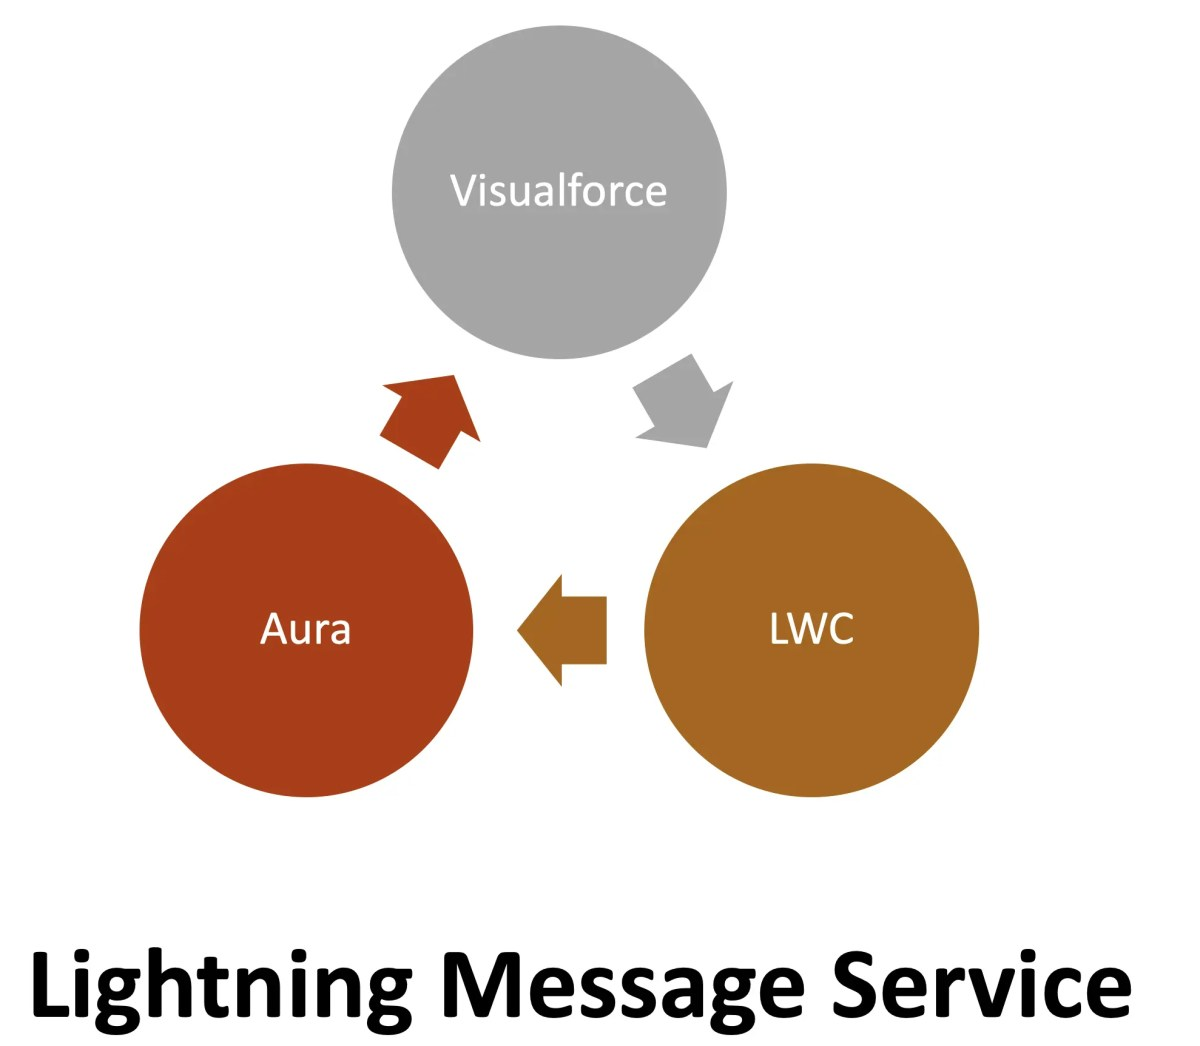 Salesforce Lightning Message Service